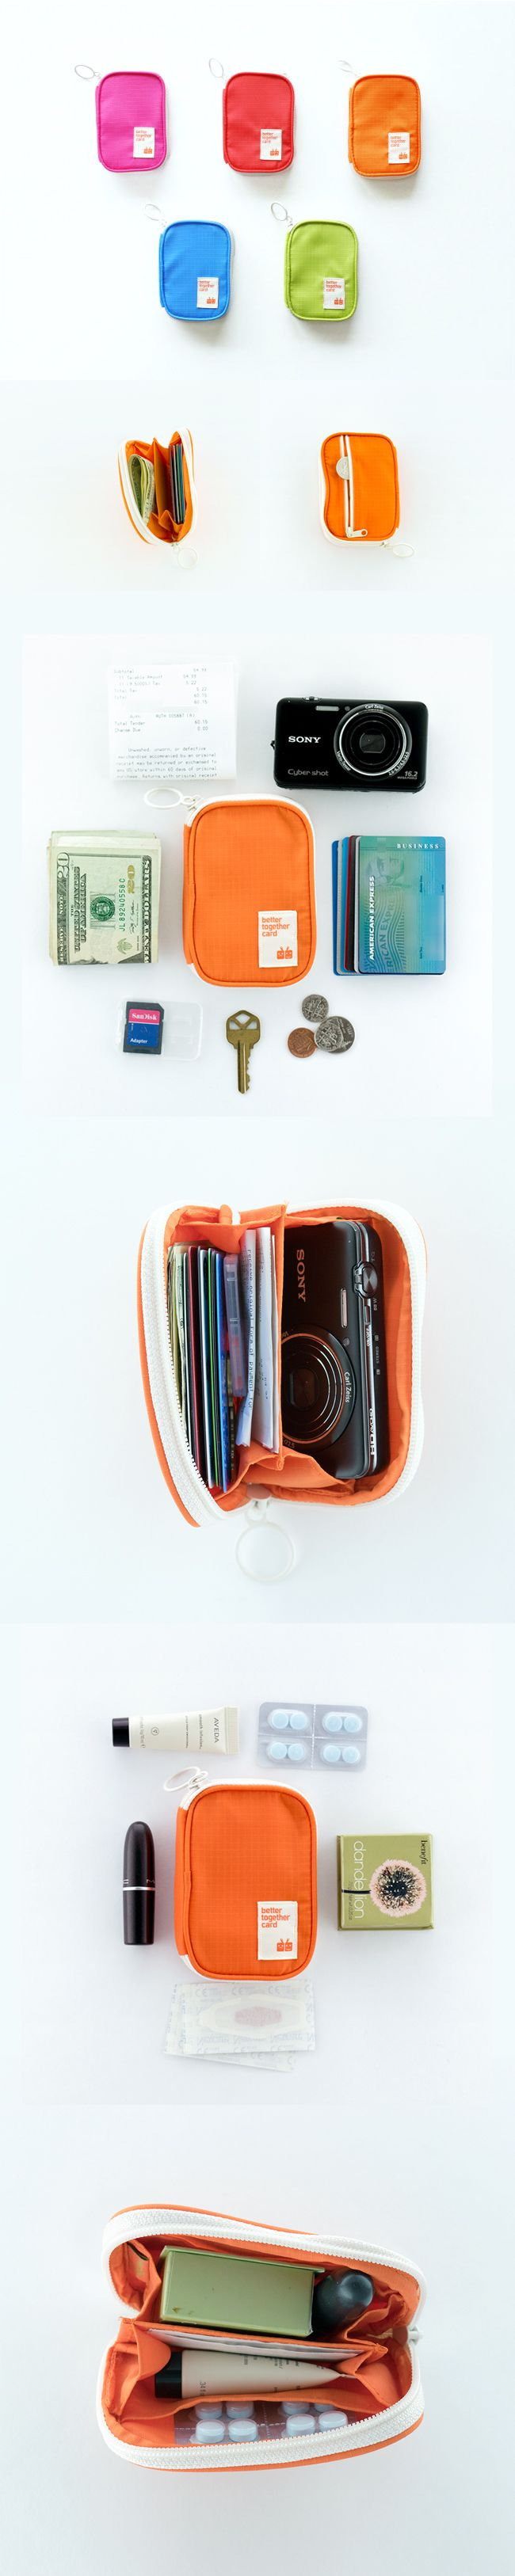 The Better Together Card Pouch is the essential pouch for any trip- keep everything safe and organized.